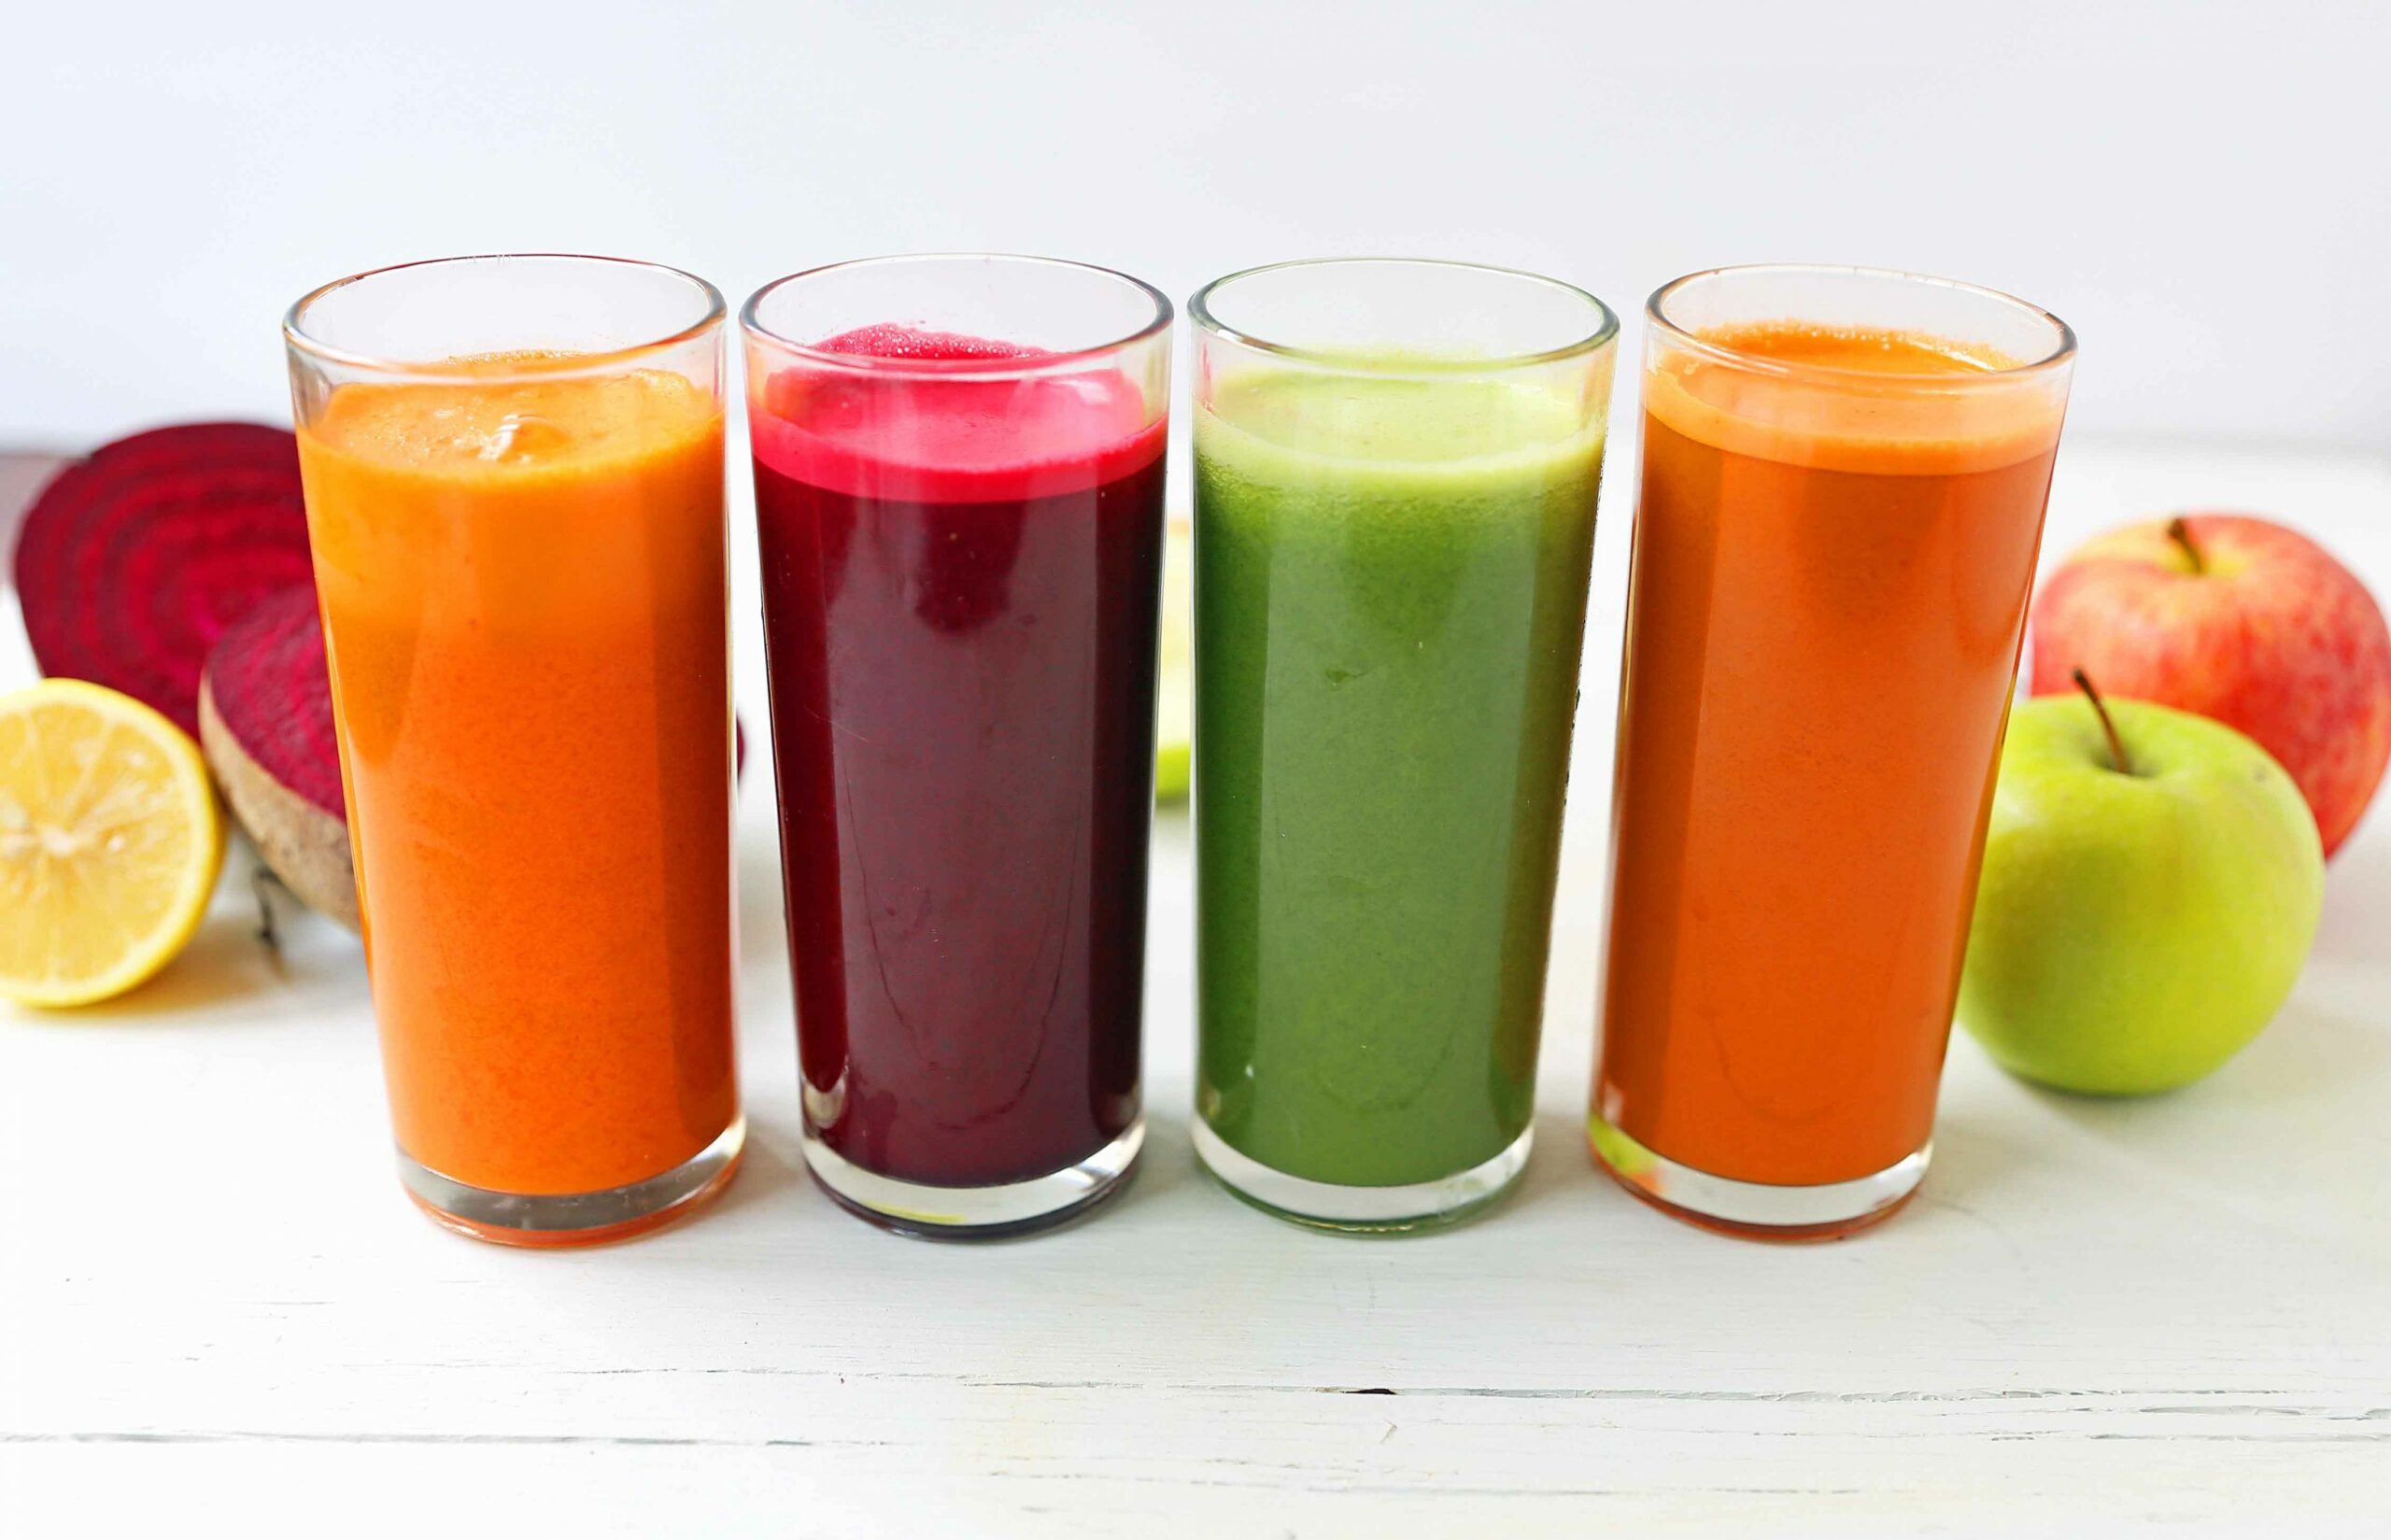 Healthy Juice Cleanse Recipes - Recipes Vegetable Juices